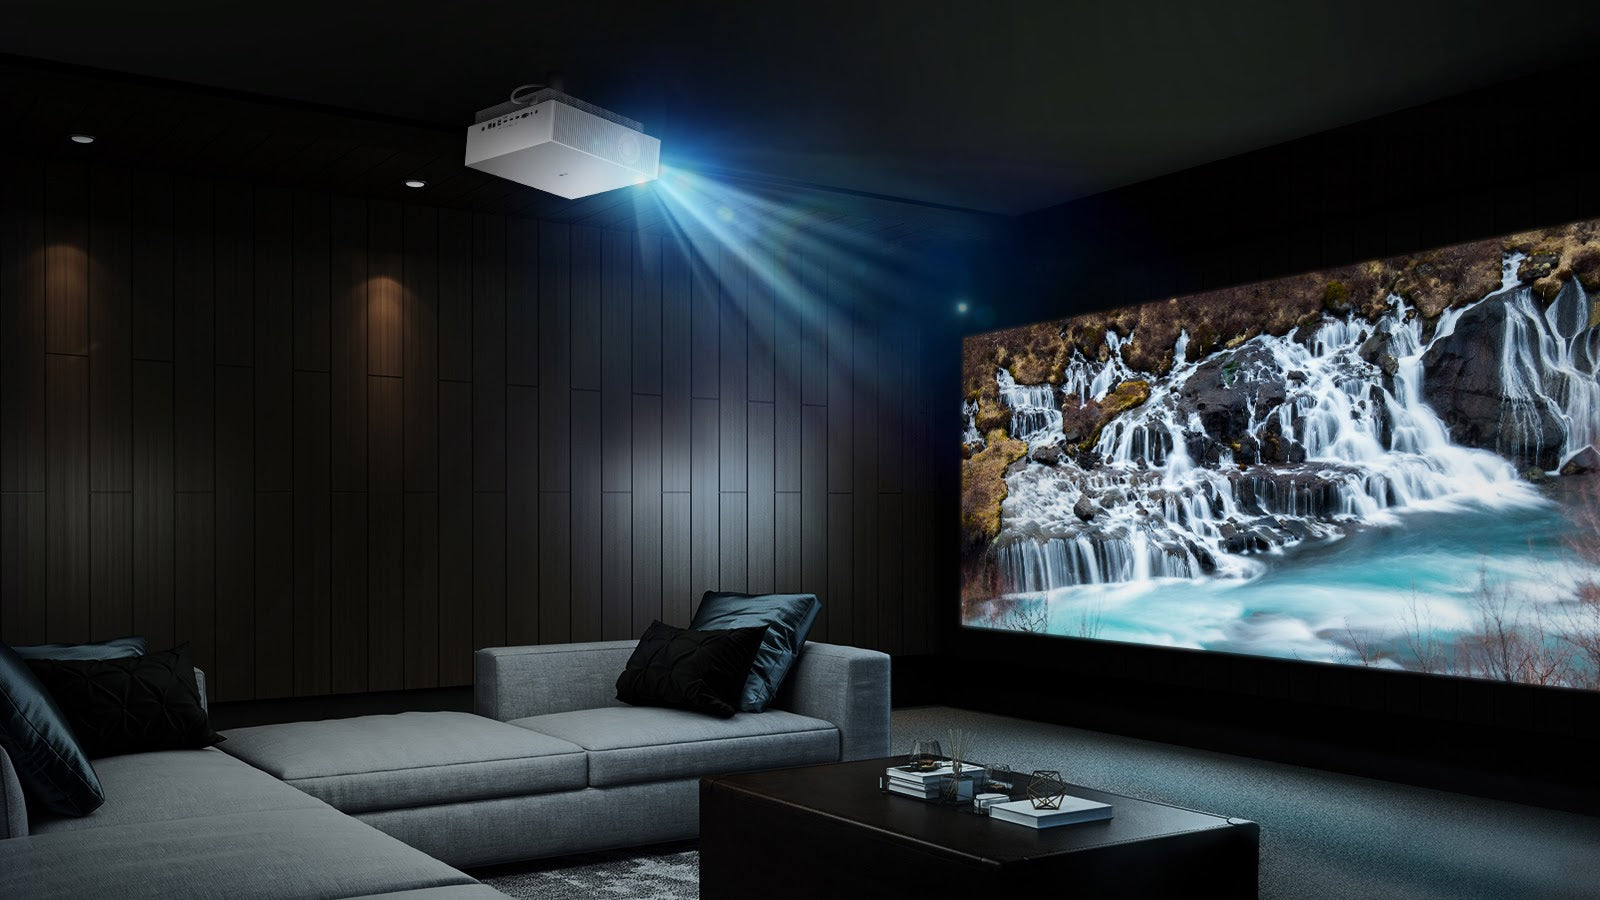 What is the Best Home Cinema Projector to Buy in 2021?